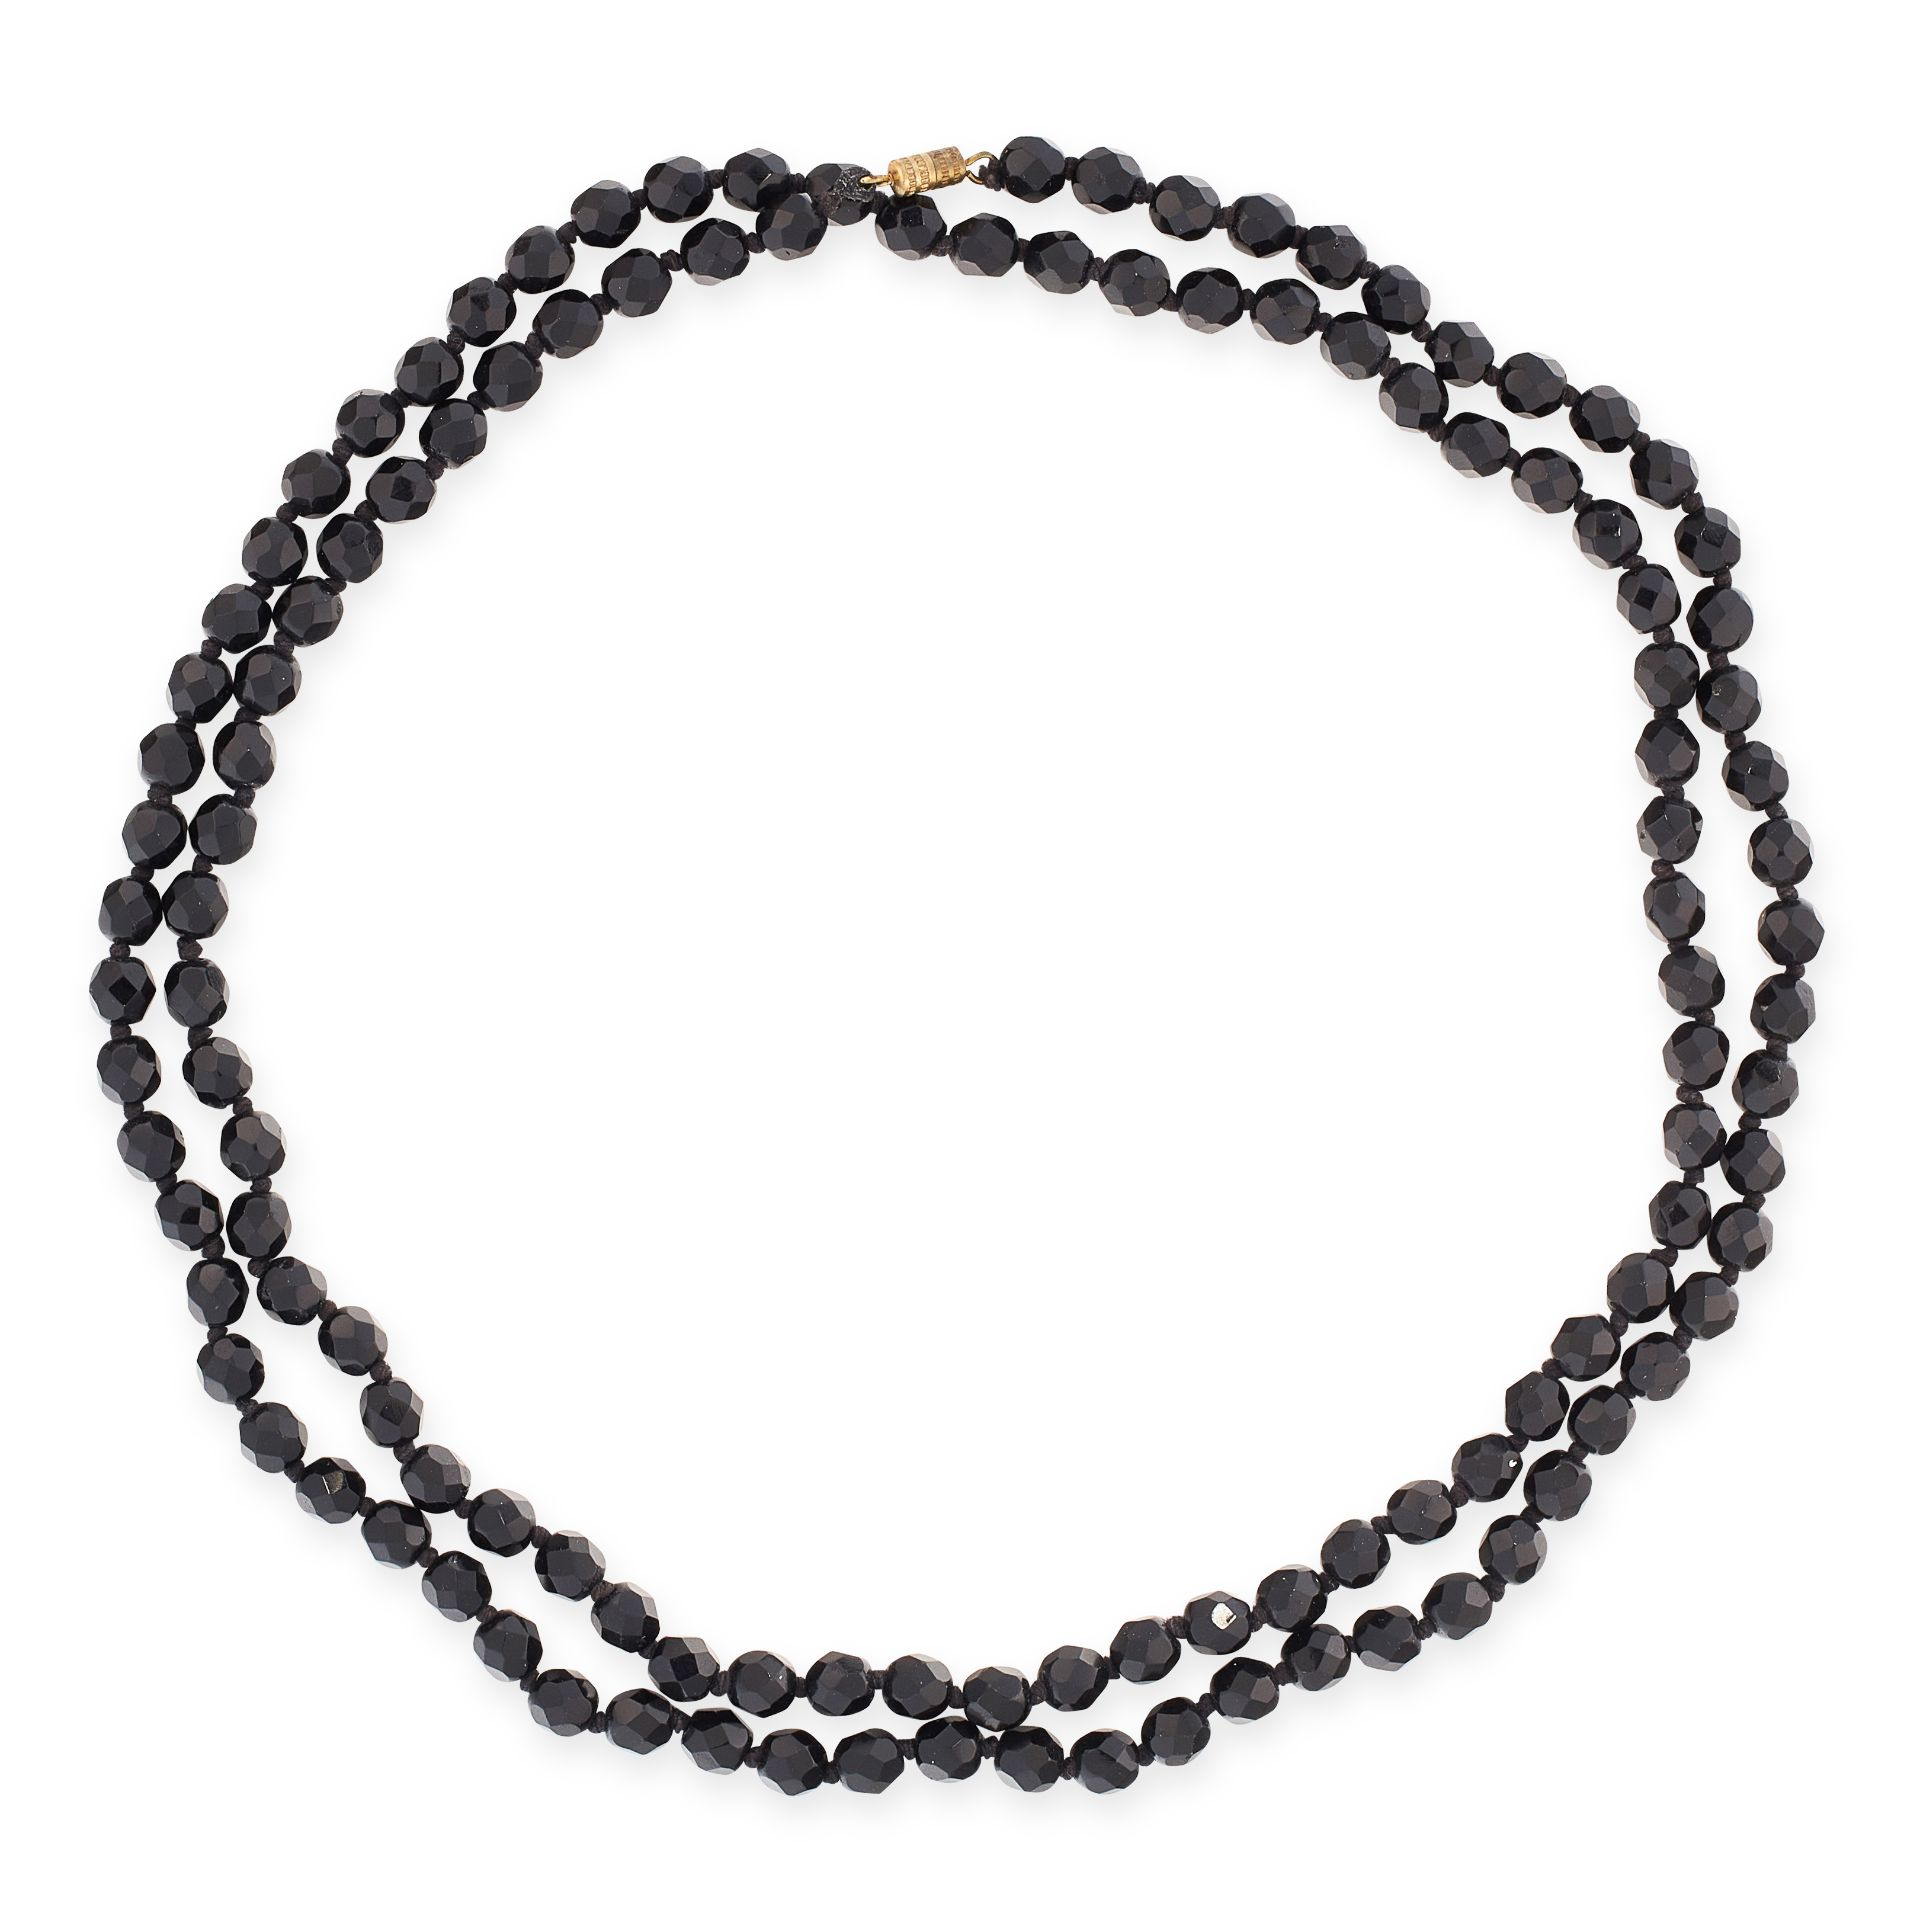 A VINTAGE BEAD NECKLACE comprising a single row of faceted black beads, 104.0cm, 52.8g.